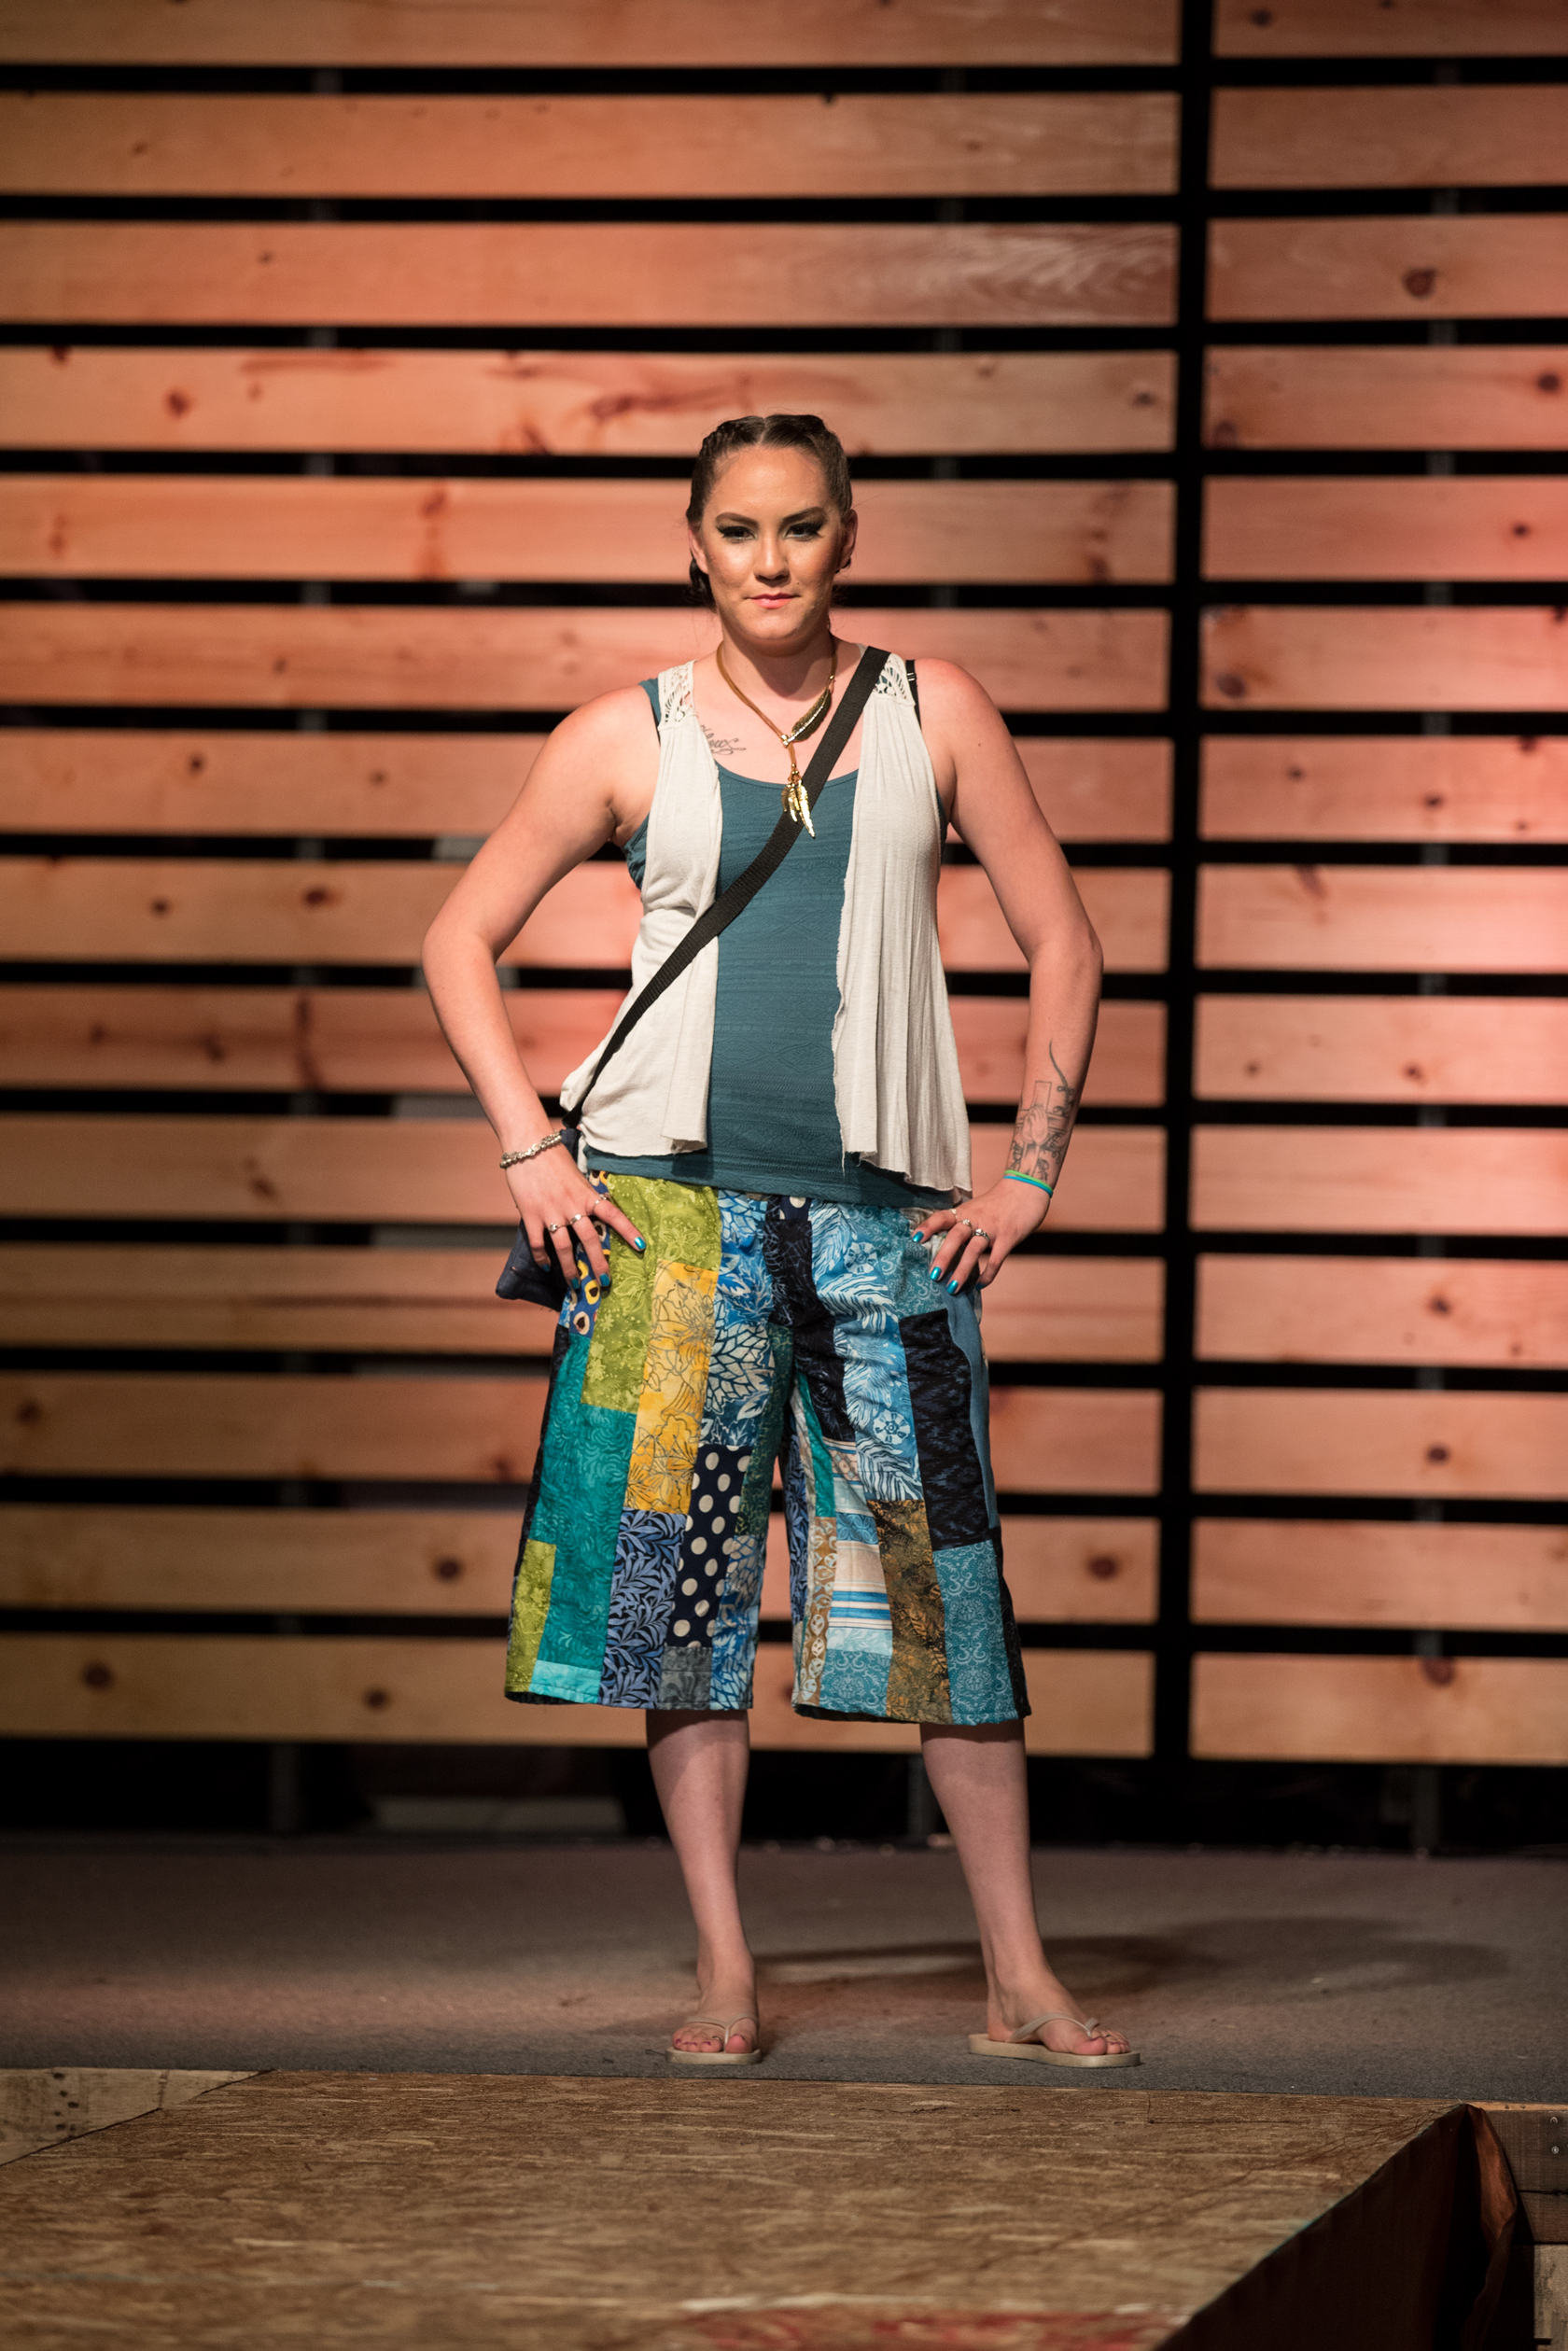 Mission Wear Upcycled Patchwork Fashion Show - 057.jpg